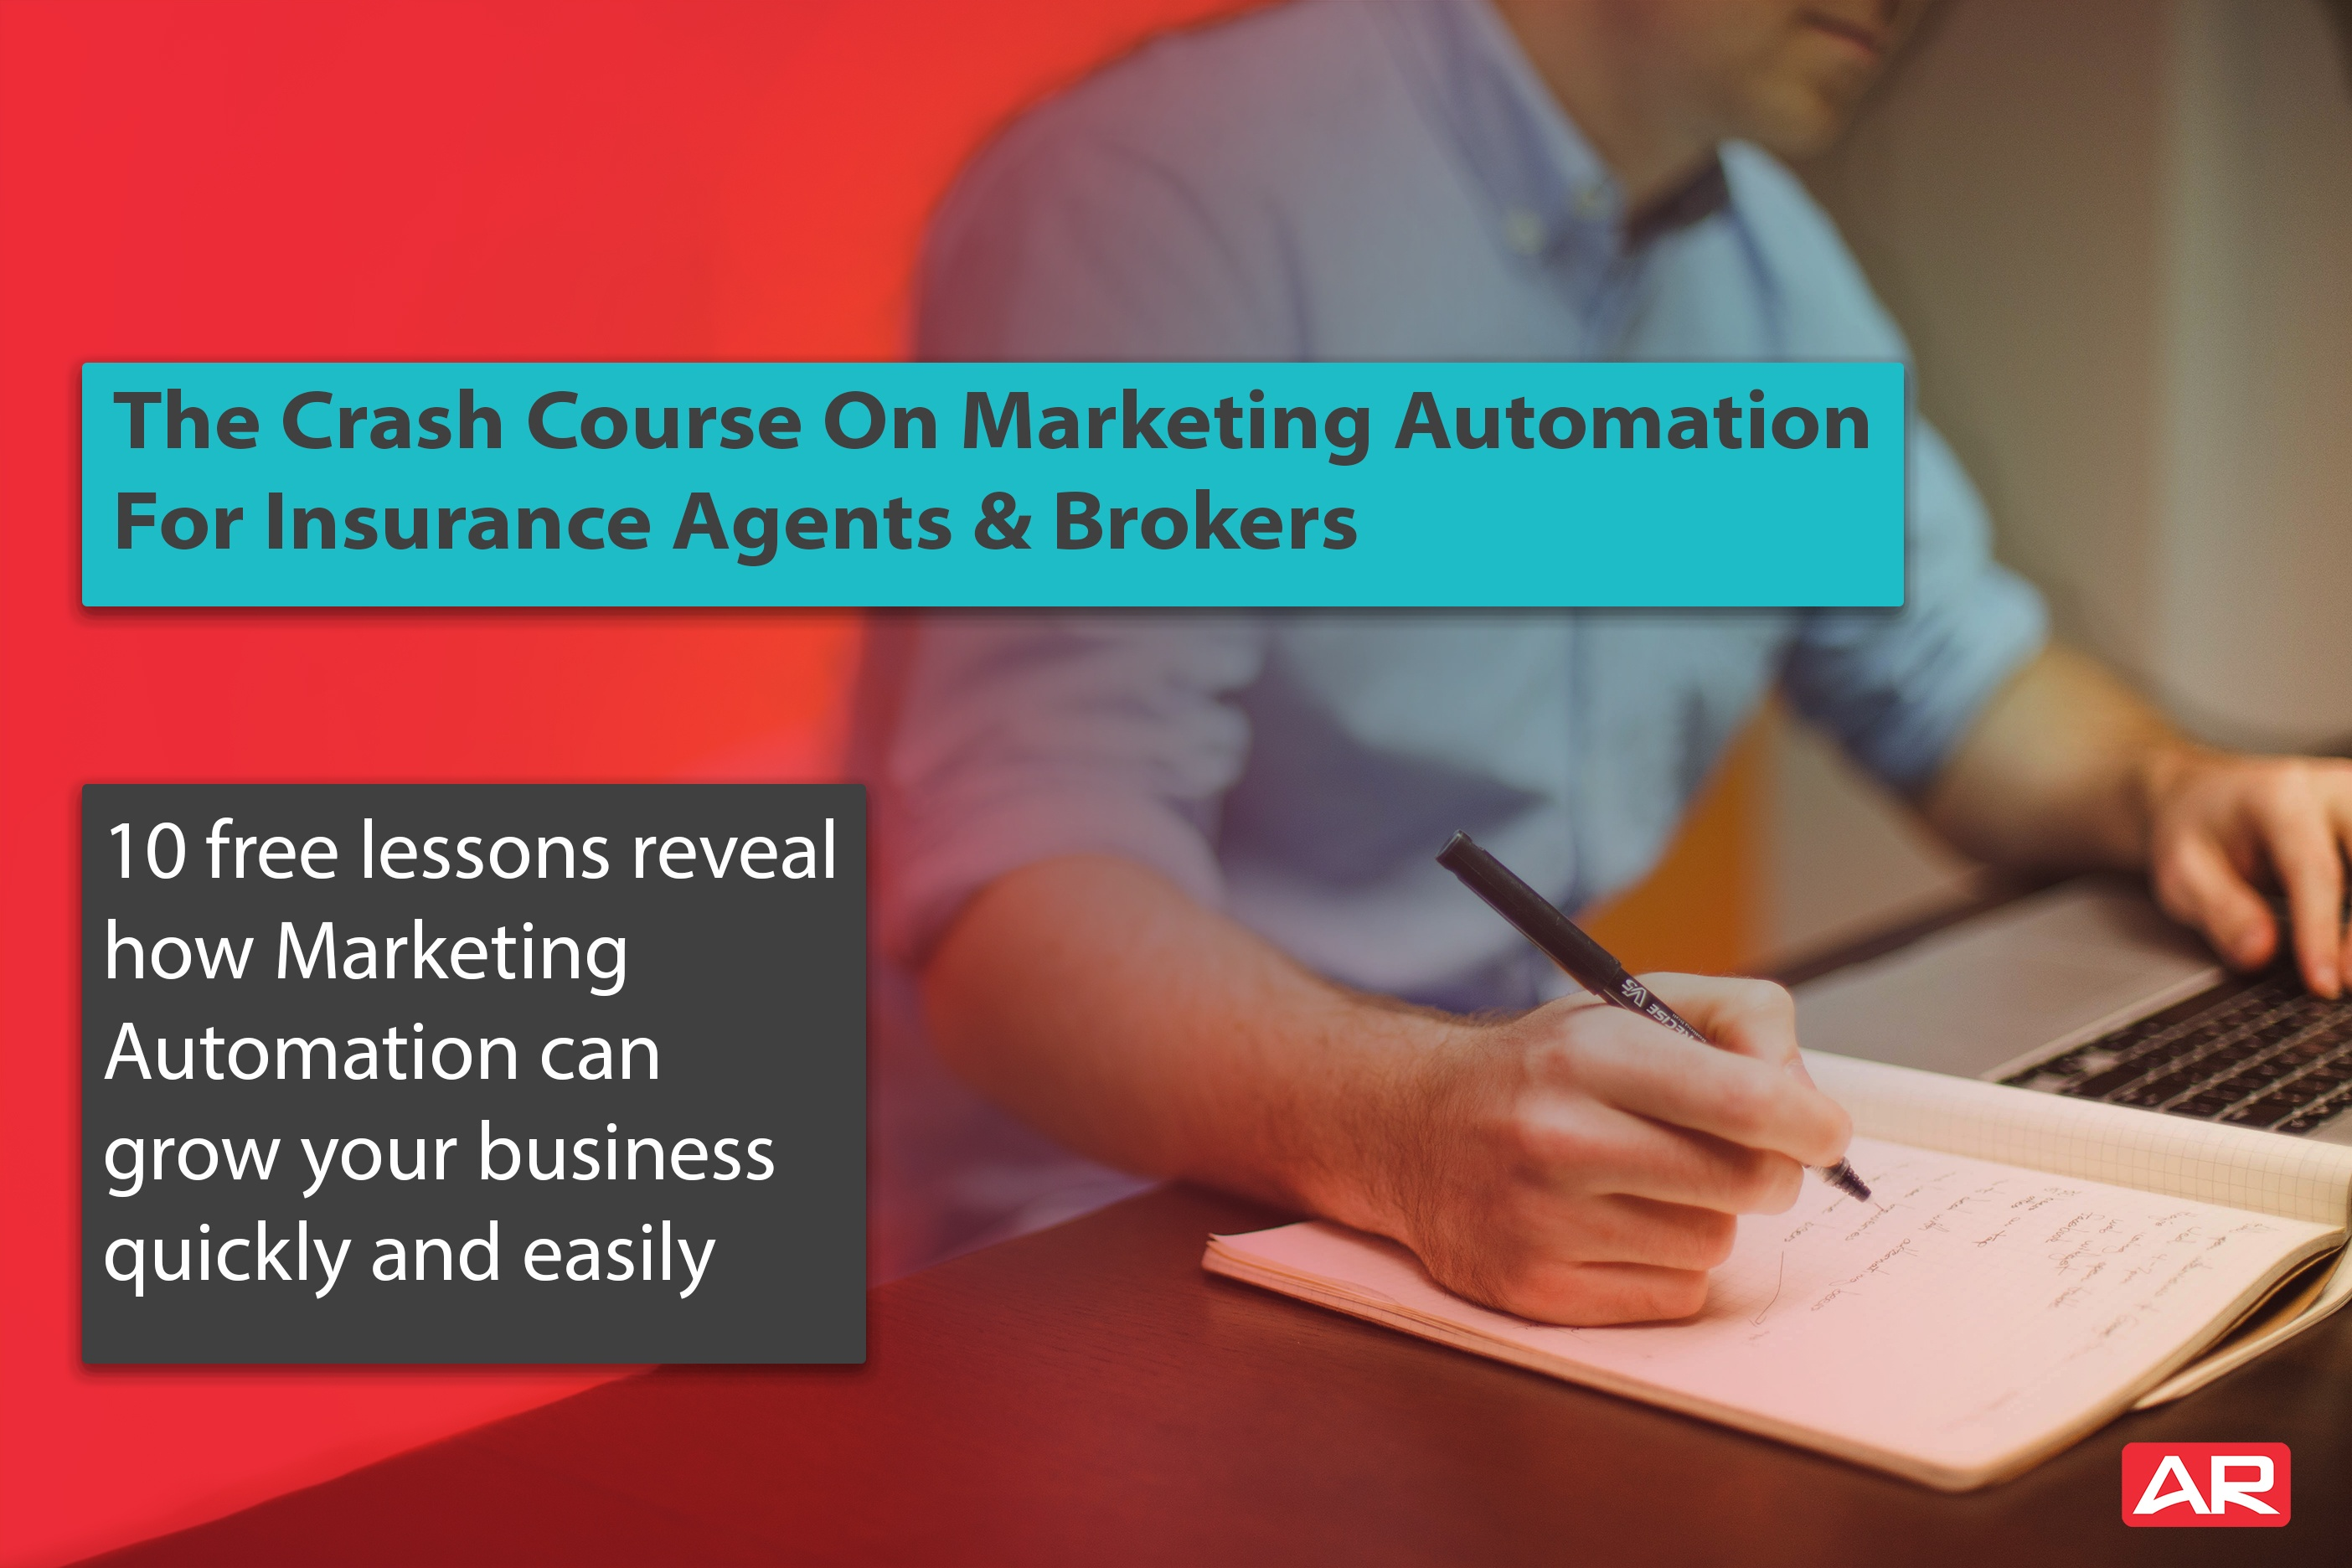 Marketing Automation Crash Course for Insurance Agents & Brokers